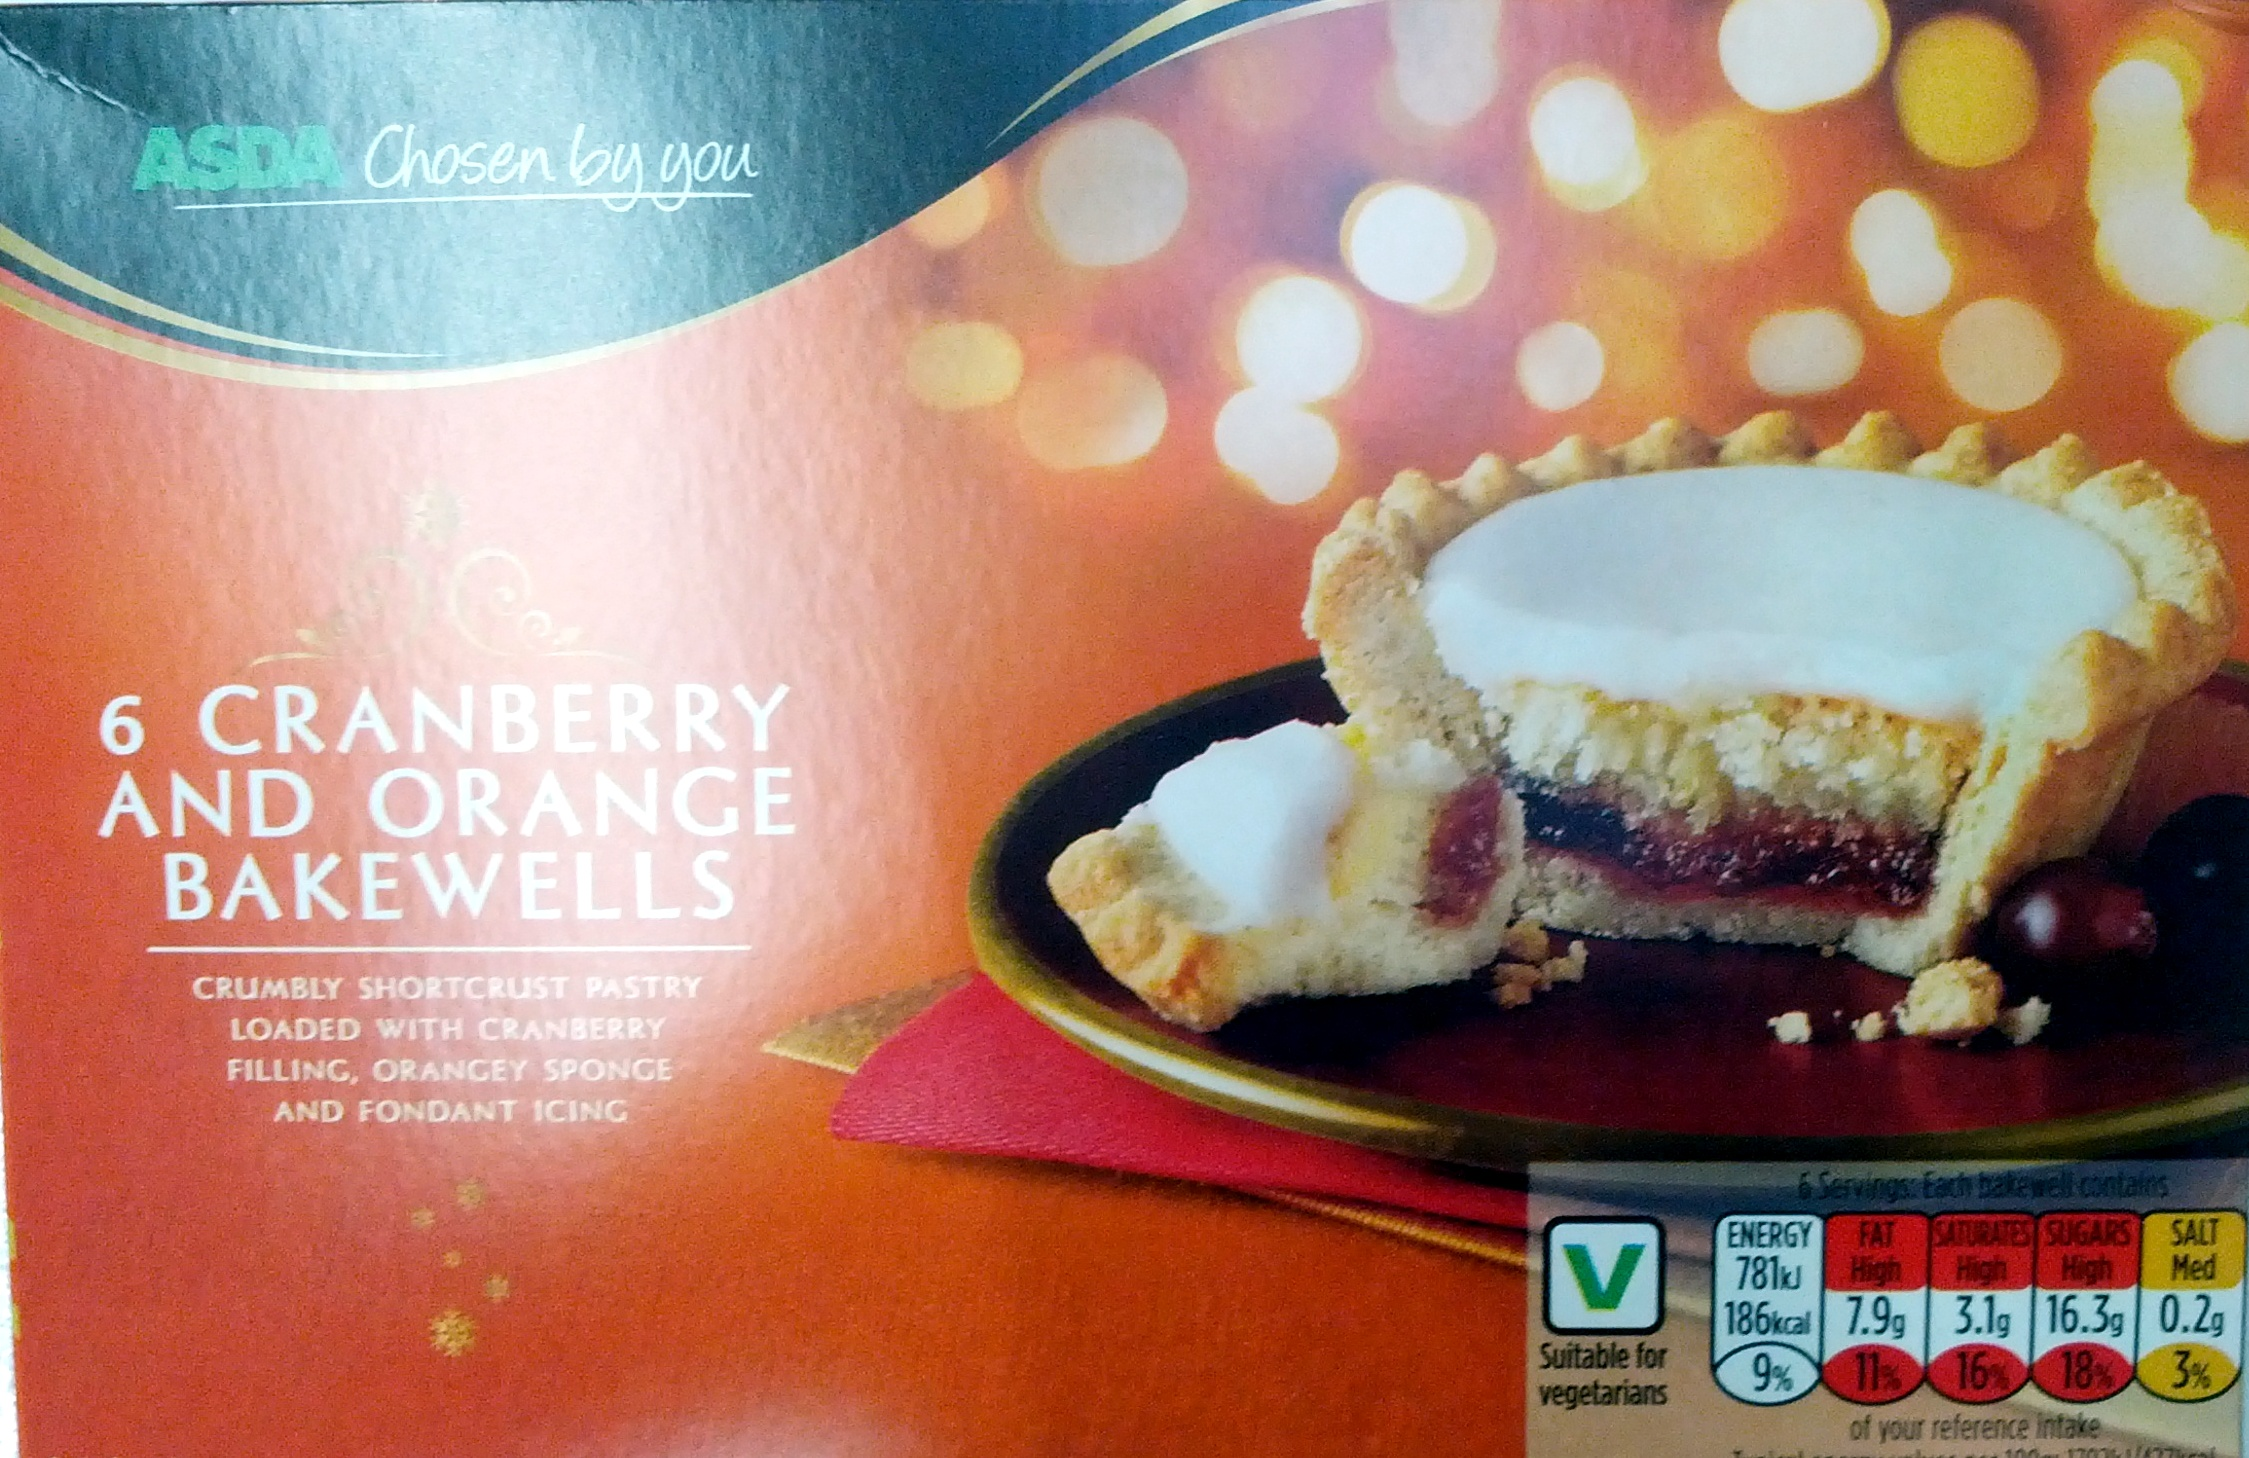 6 Cranberry and Orange Bakewells - Product